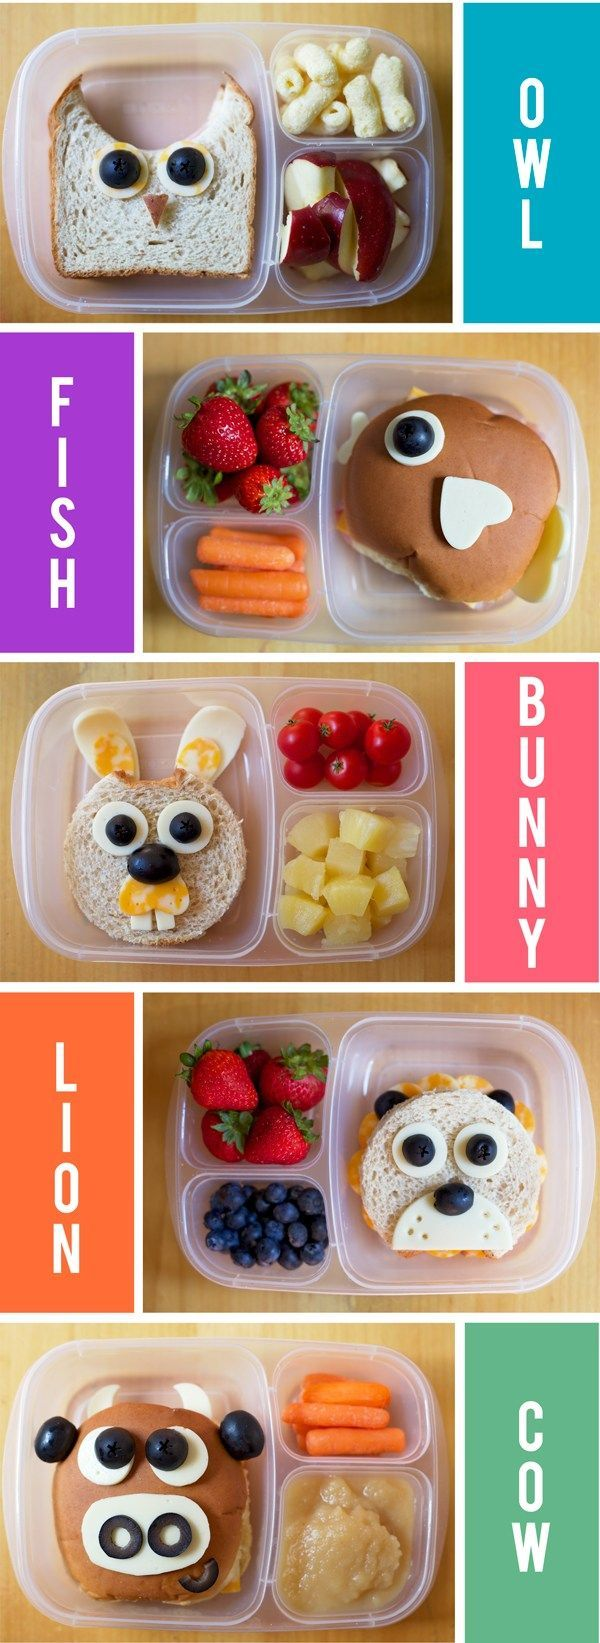 School Lunch Ideas - Back to School images